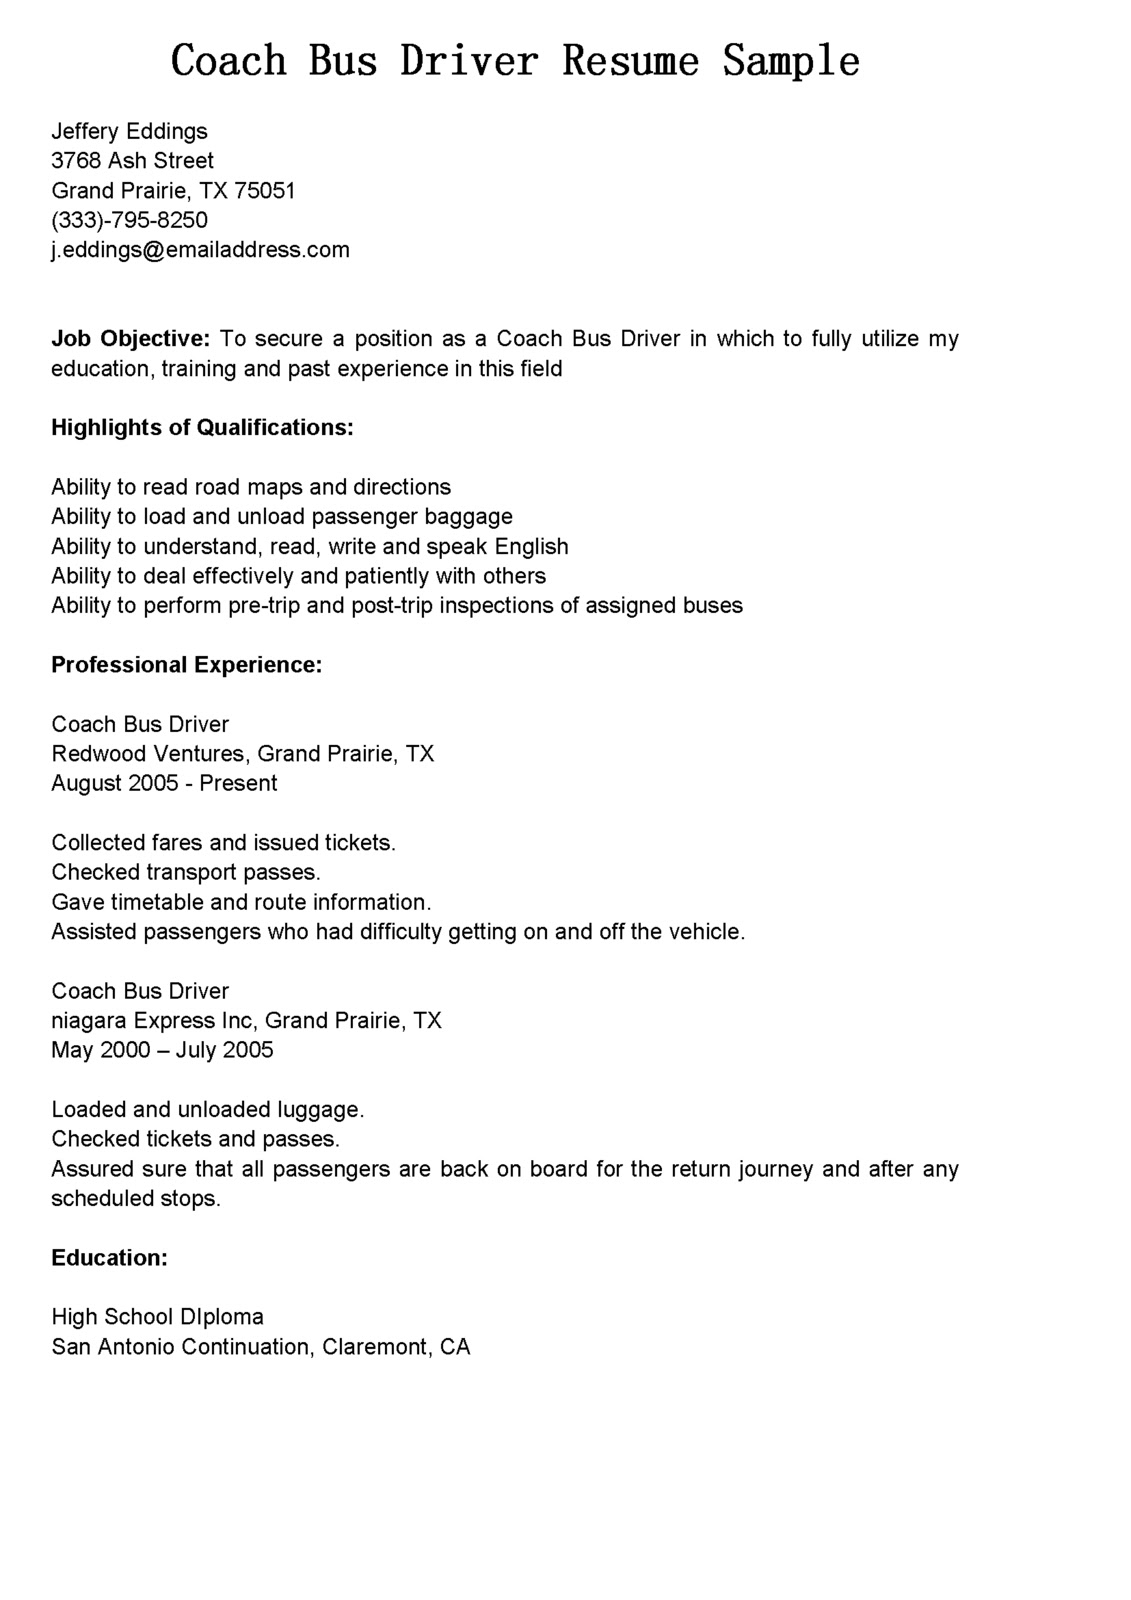 Driver Resumes Coach Bus Driver Resume Sample